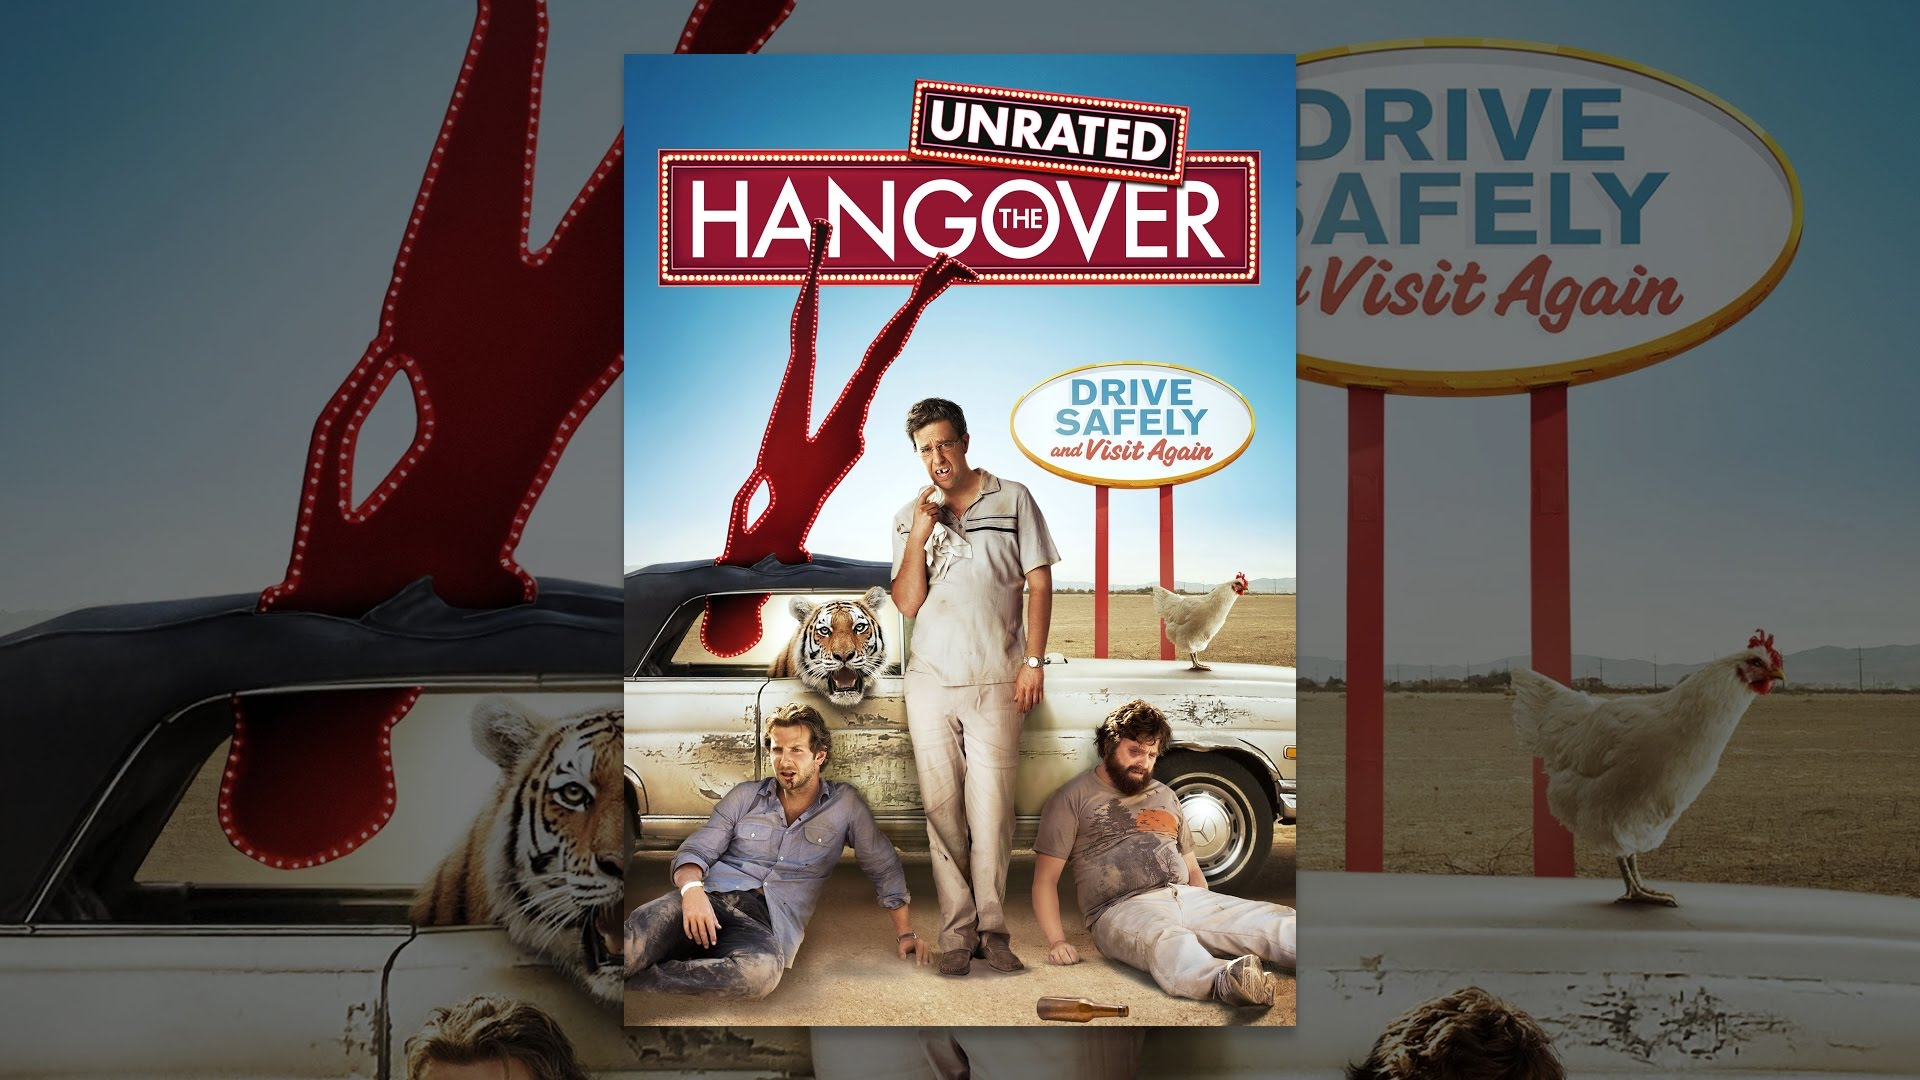 The Hangover - Unrated...